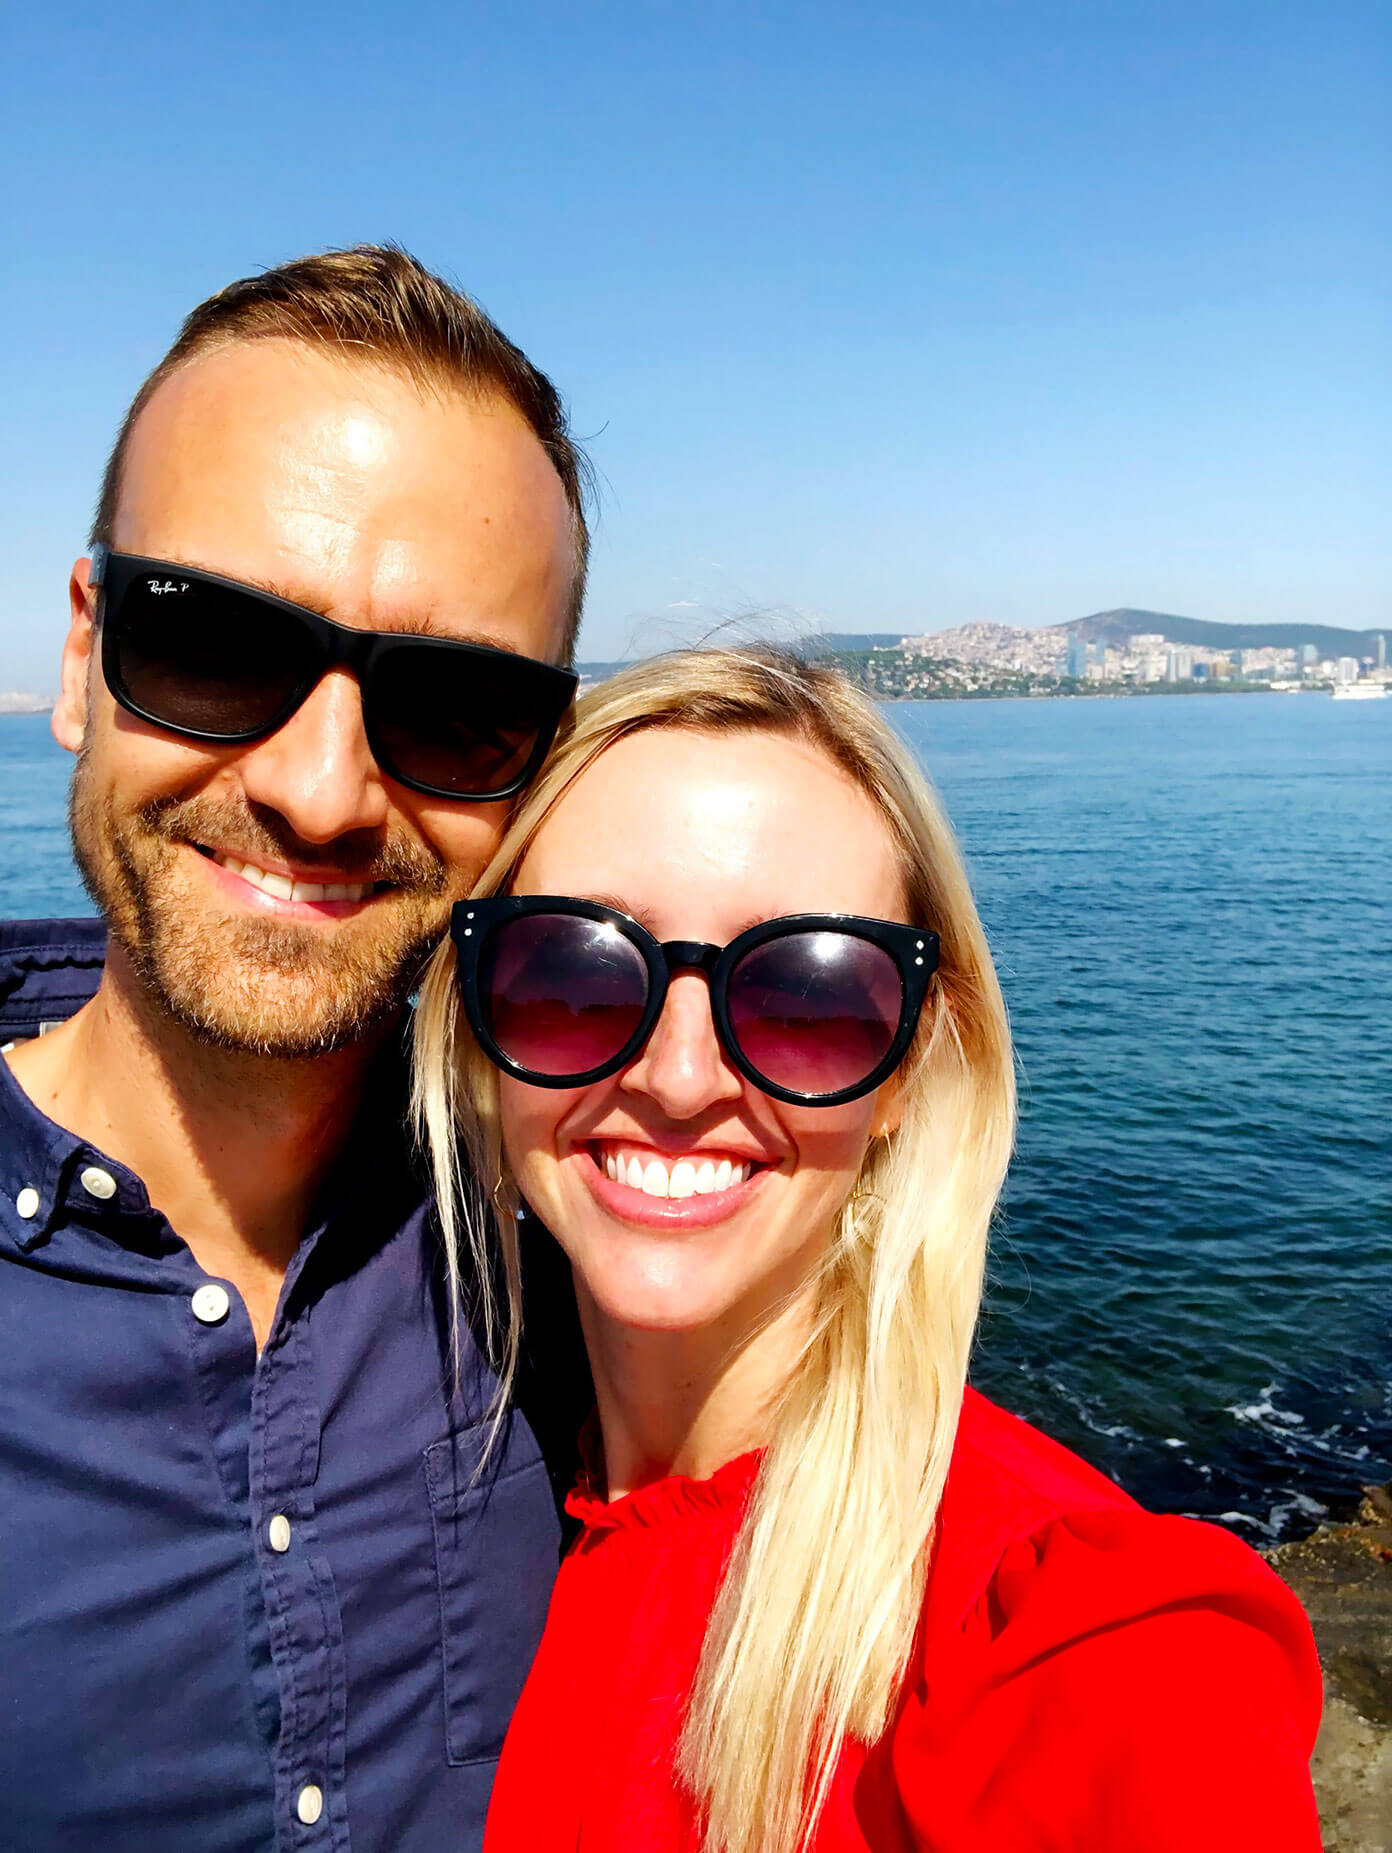 Ali Martin and Barclay Martin in Istanbul, Turkey